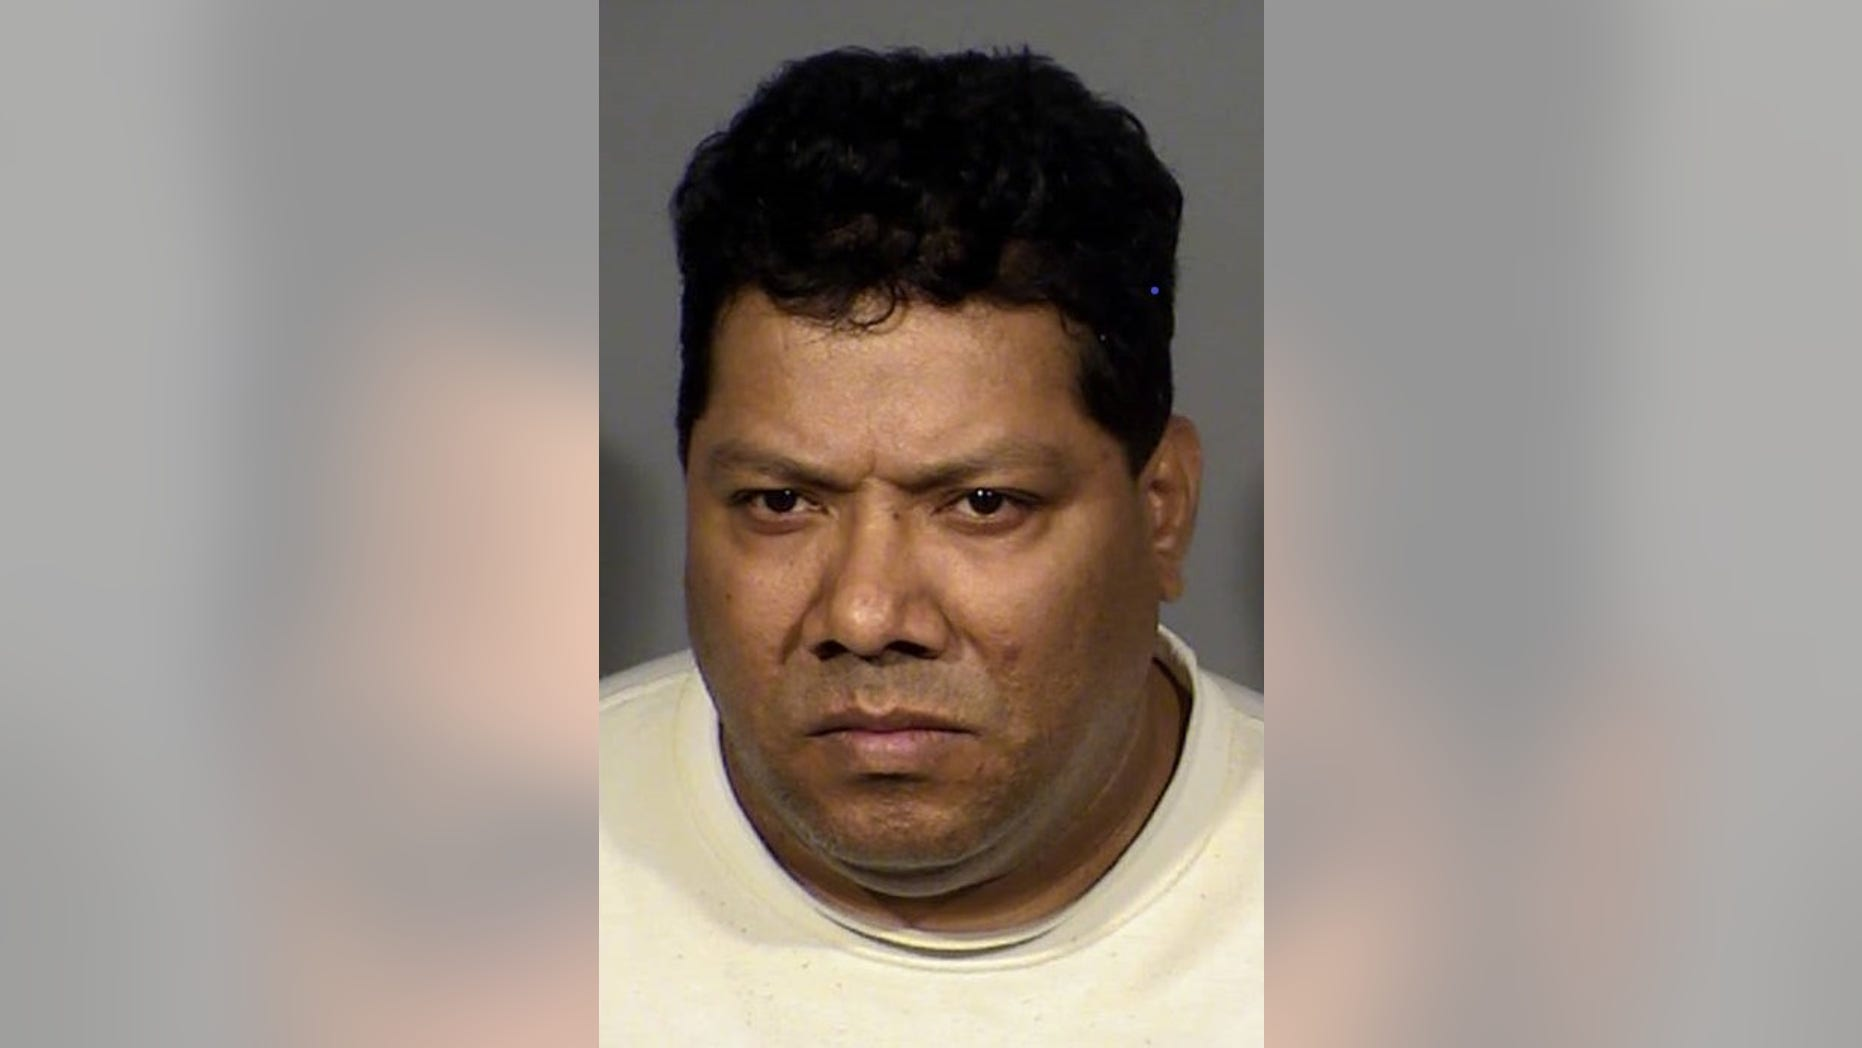 Chef Alex Hernandez, 49, was arrested Monday for allegedly stealing close to $2,000 worth of lobster tails from the Bellagio Resort and Casino.